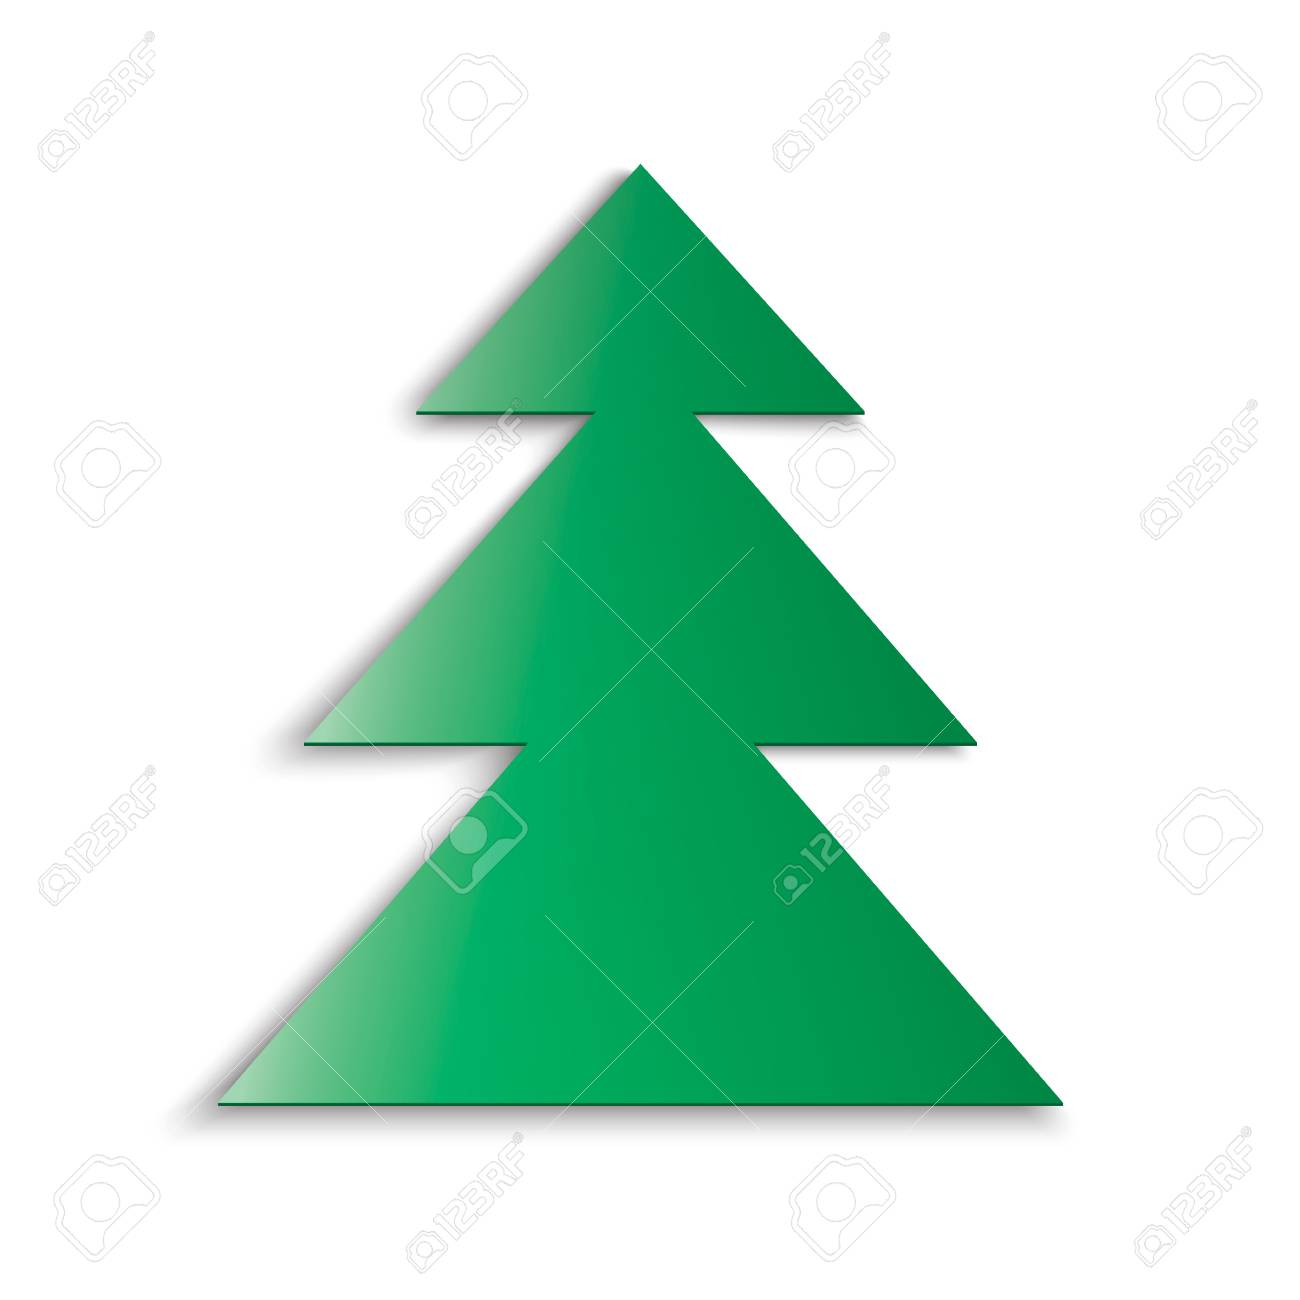 Green christmas tree soft shadow on white background cut out of paper stock vector